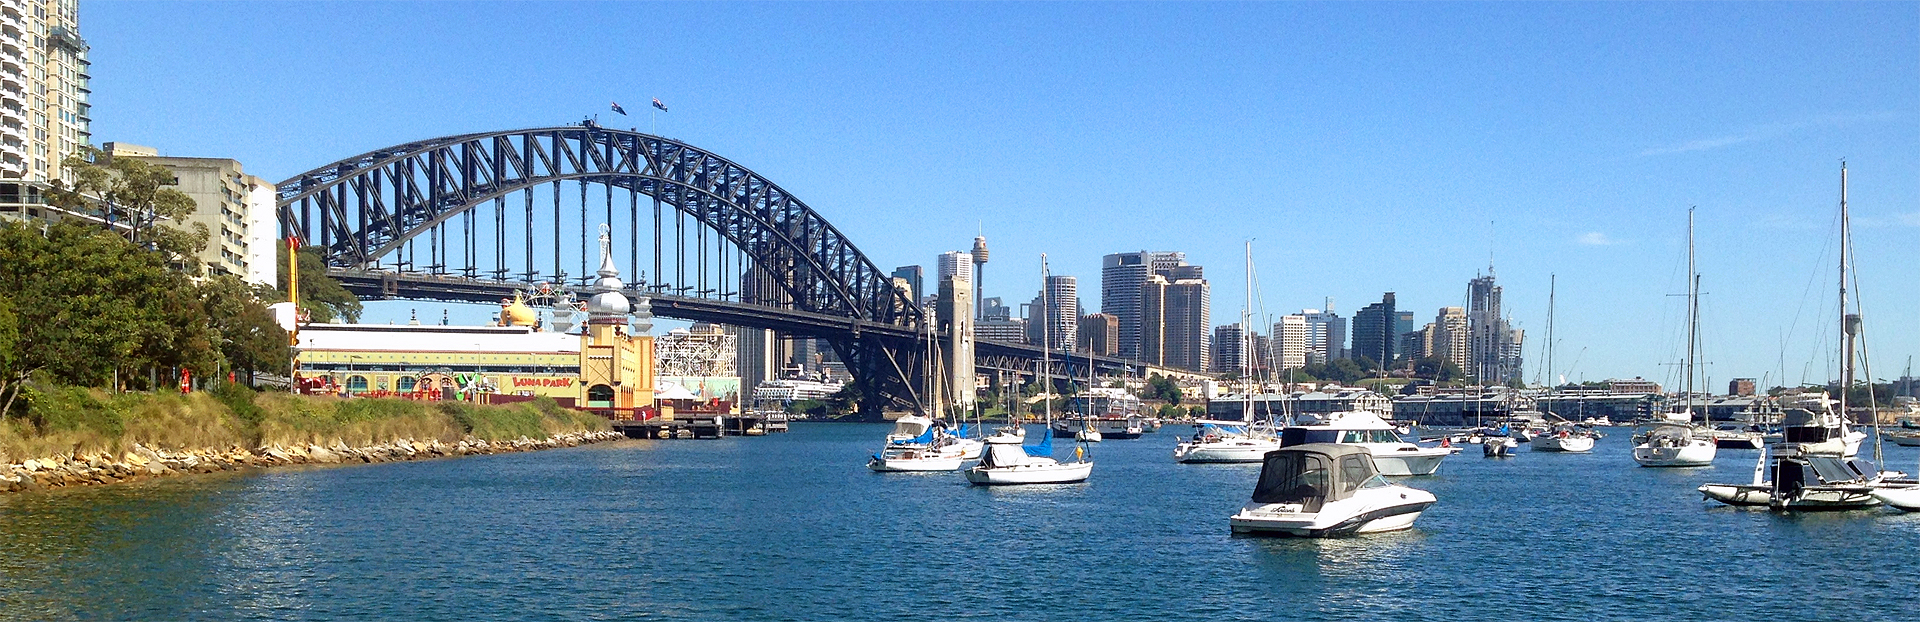 Sydney audio tour: A harbour foreshore walk to Lavender Bay